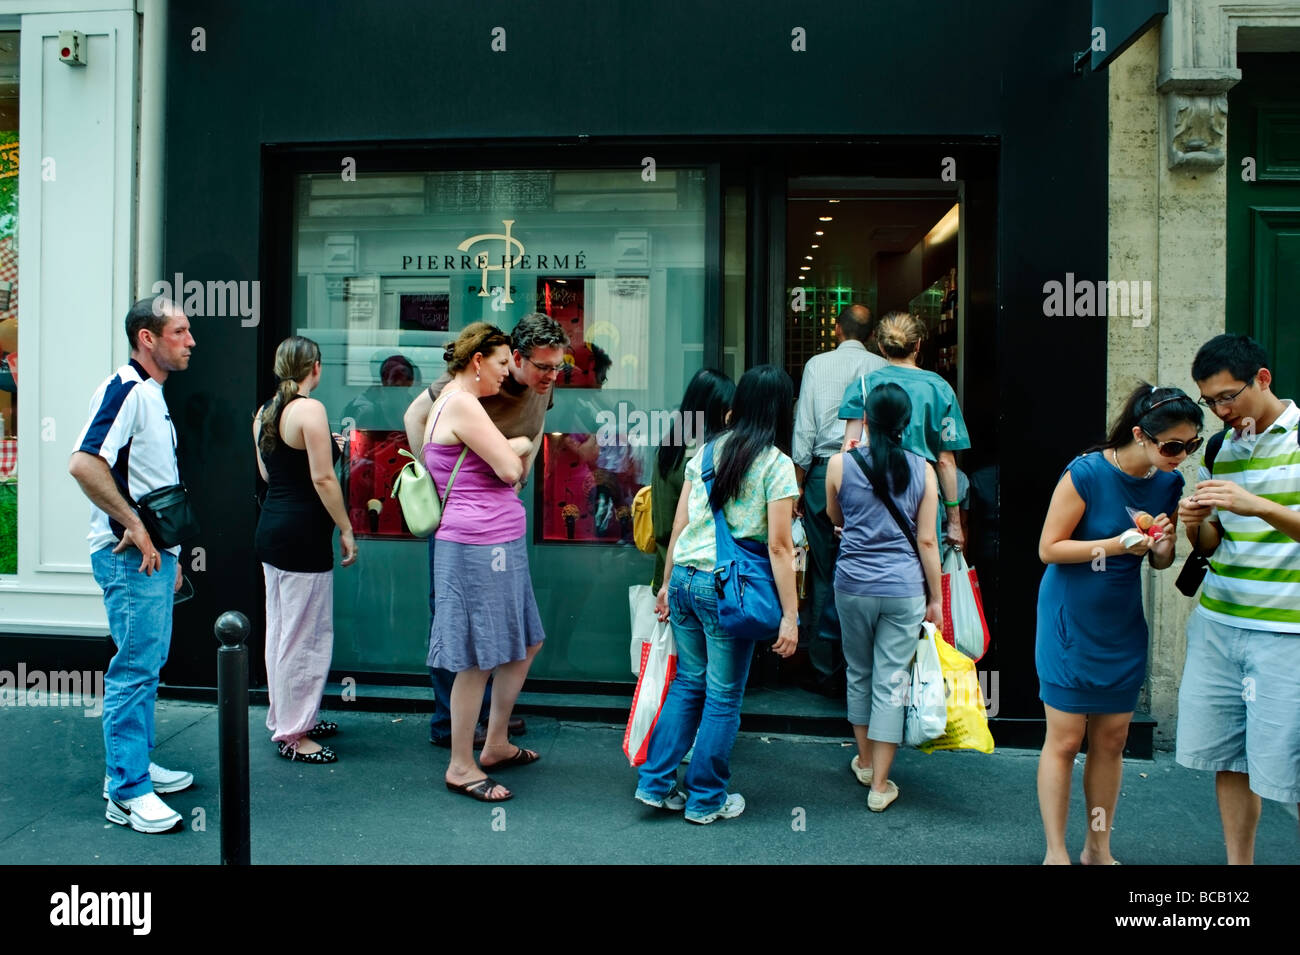 Paris France, French Pastries, Chocolates Store 'Pierre Hermé' Outside Line of People, Queuing up, - Stock Image